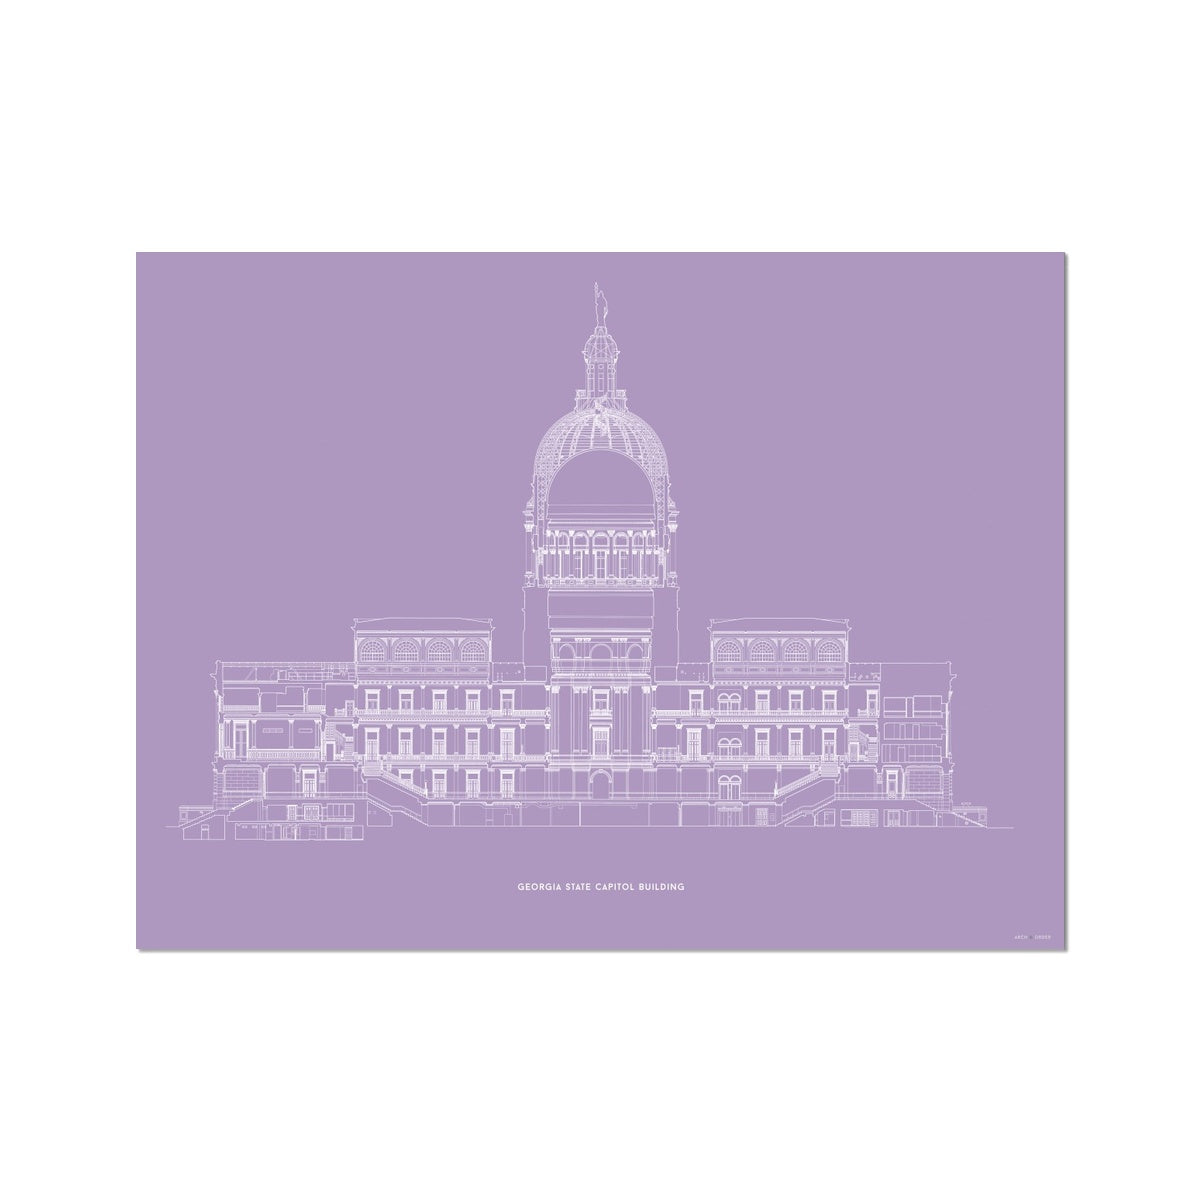 The Georgia State Capitol Building - West Elevation Cross Section - Lavender - German Etching Print